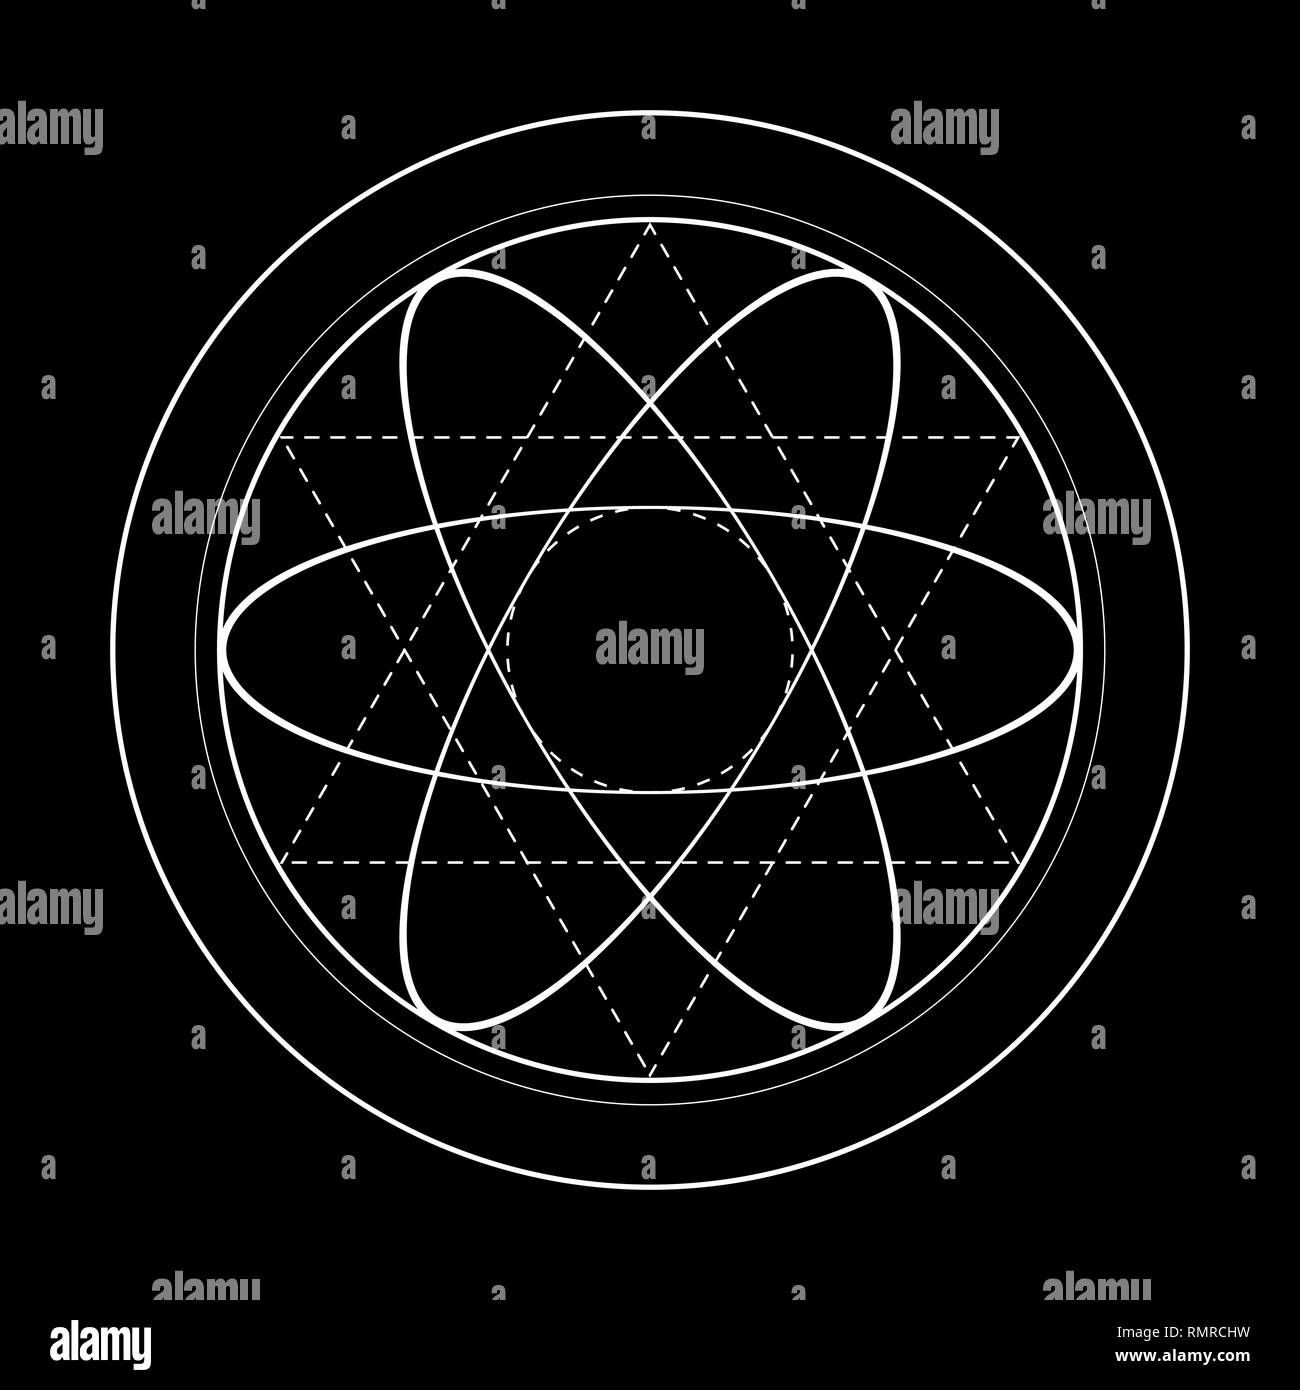 sacred geometry symbol illustration. Energy rotated circles - Stock Image